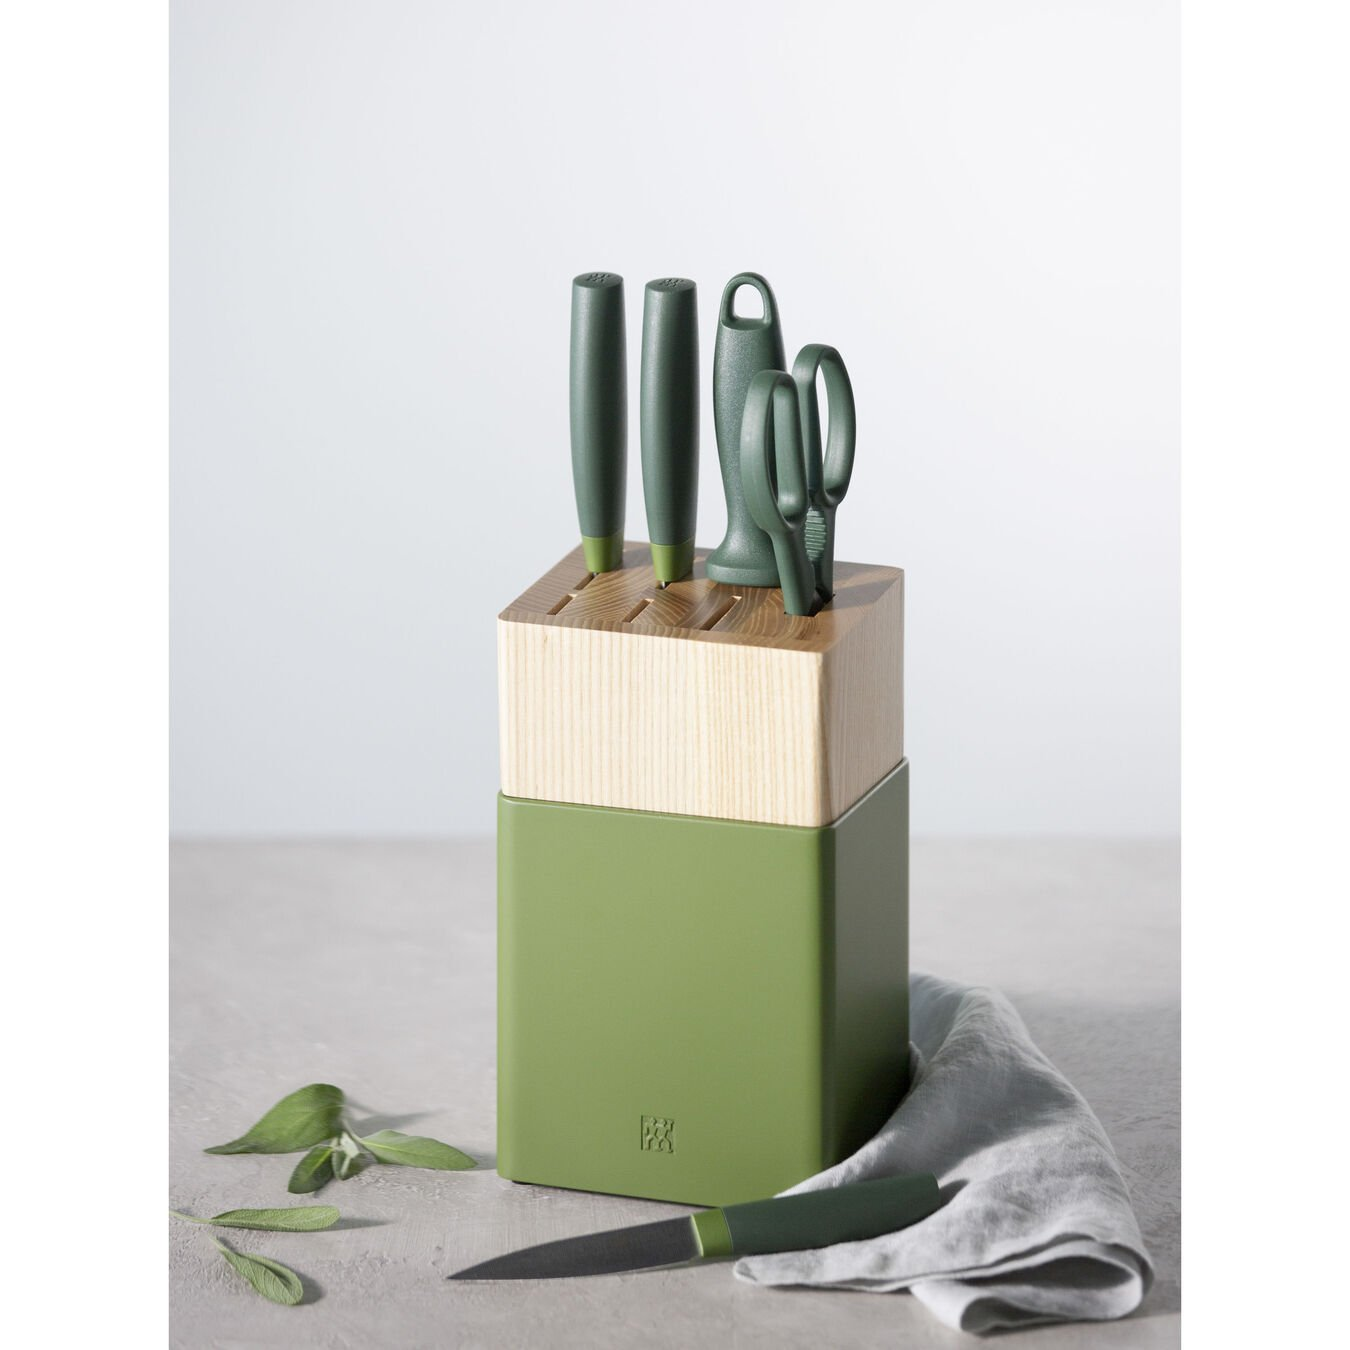 6-pc, Z Now S Knife Block Set, lime green,,large 4